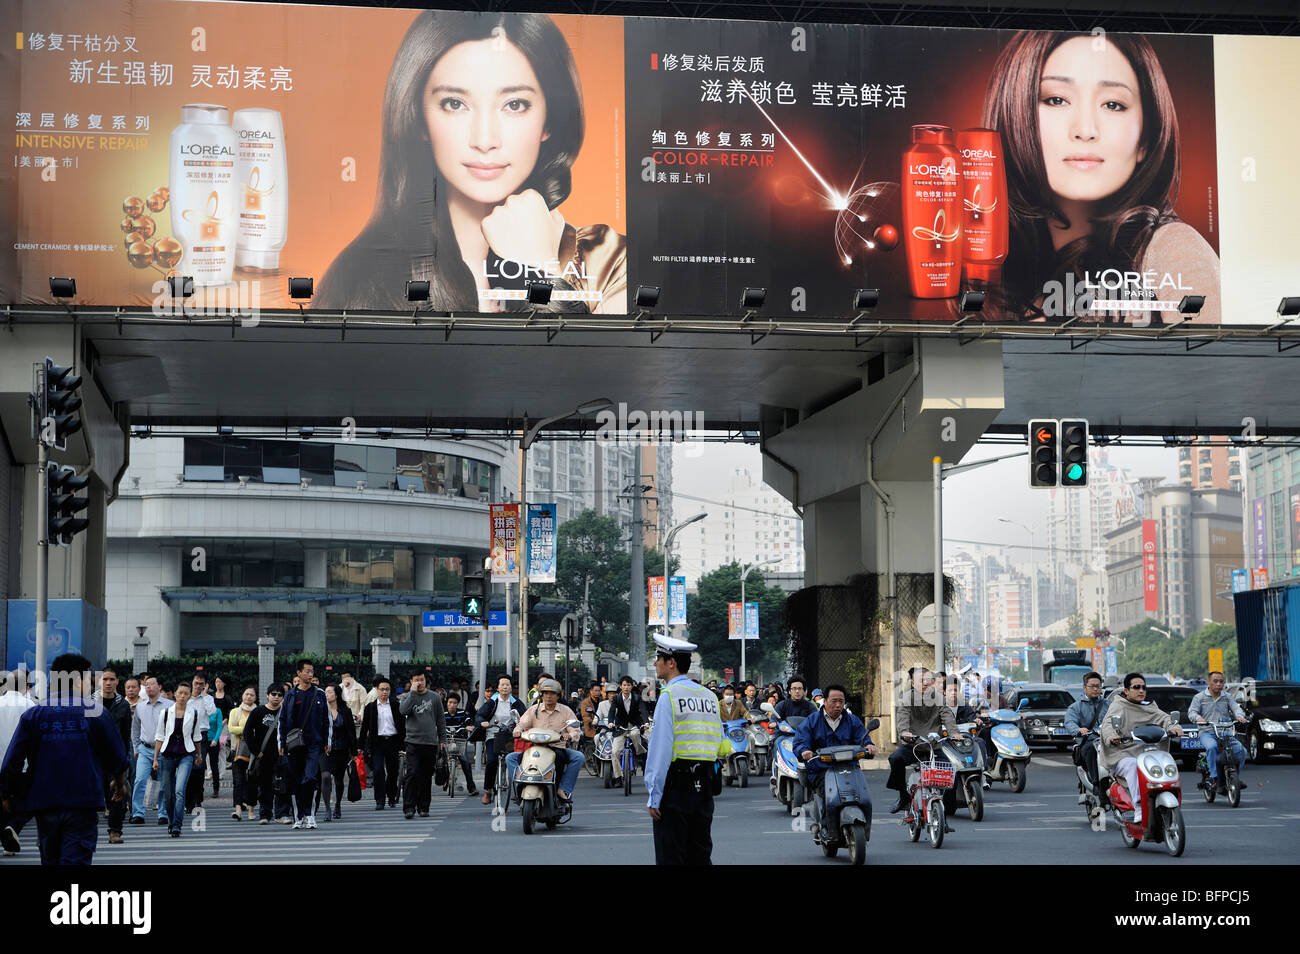 L'Oreal shampoo advertising in Shanghai, China.19-Oct-2009 - Stock Image